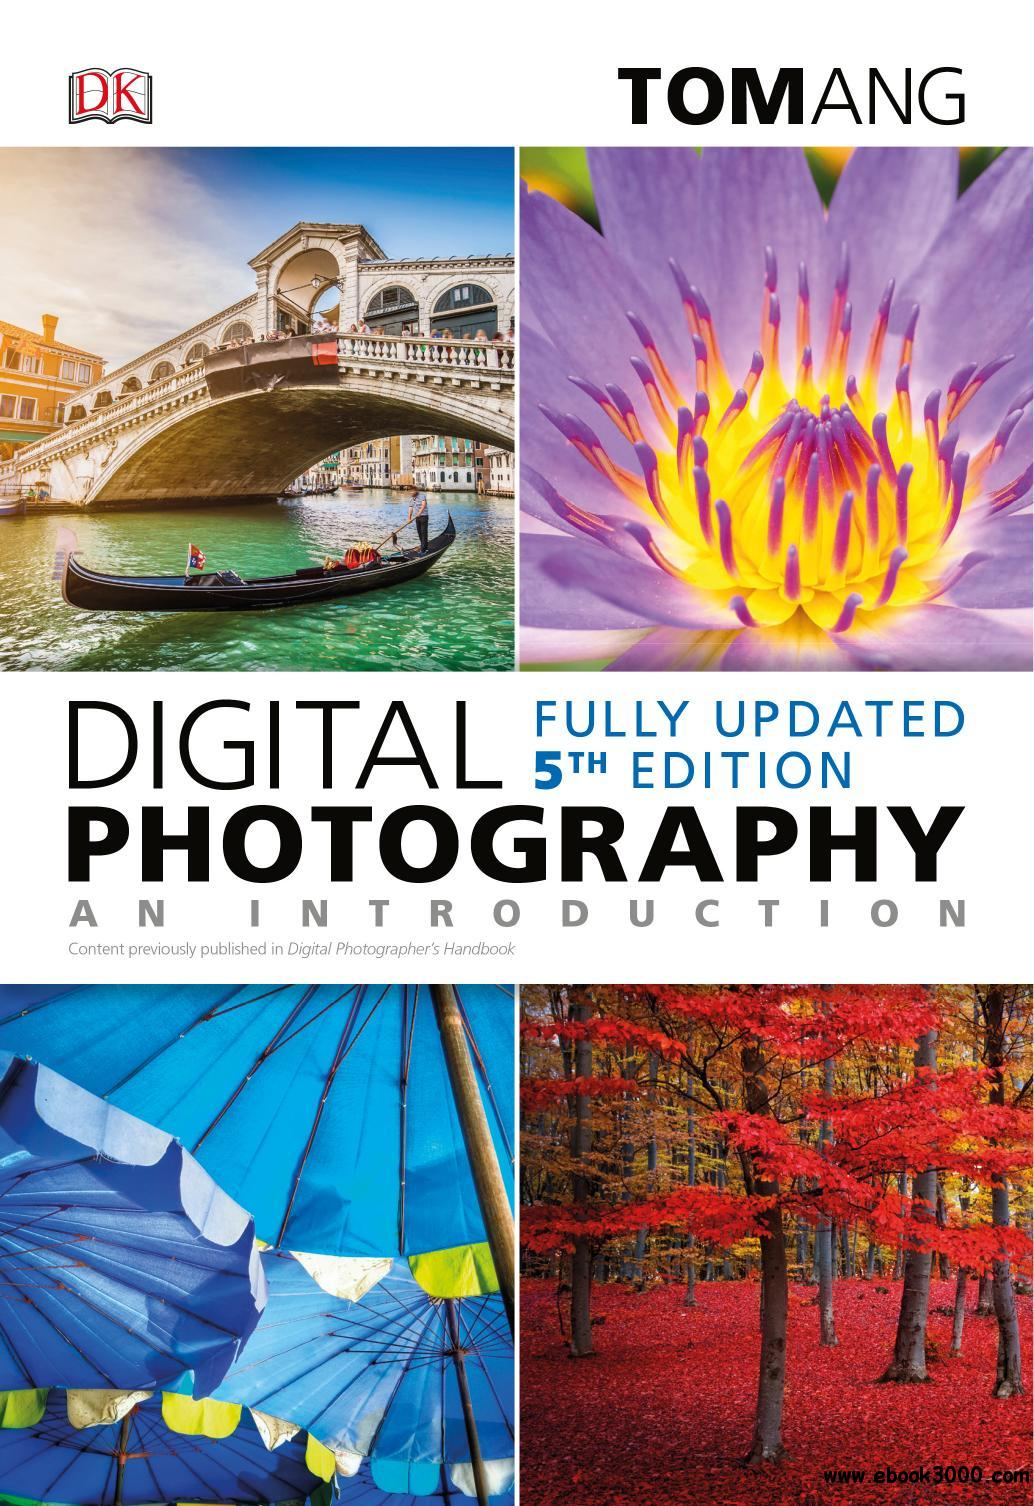 Digital Photography: An Introduction, 5th Edition